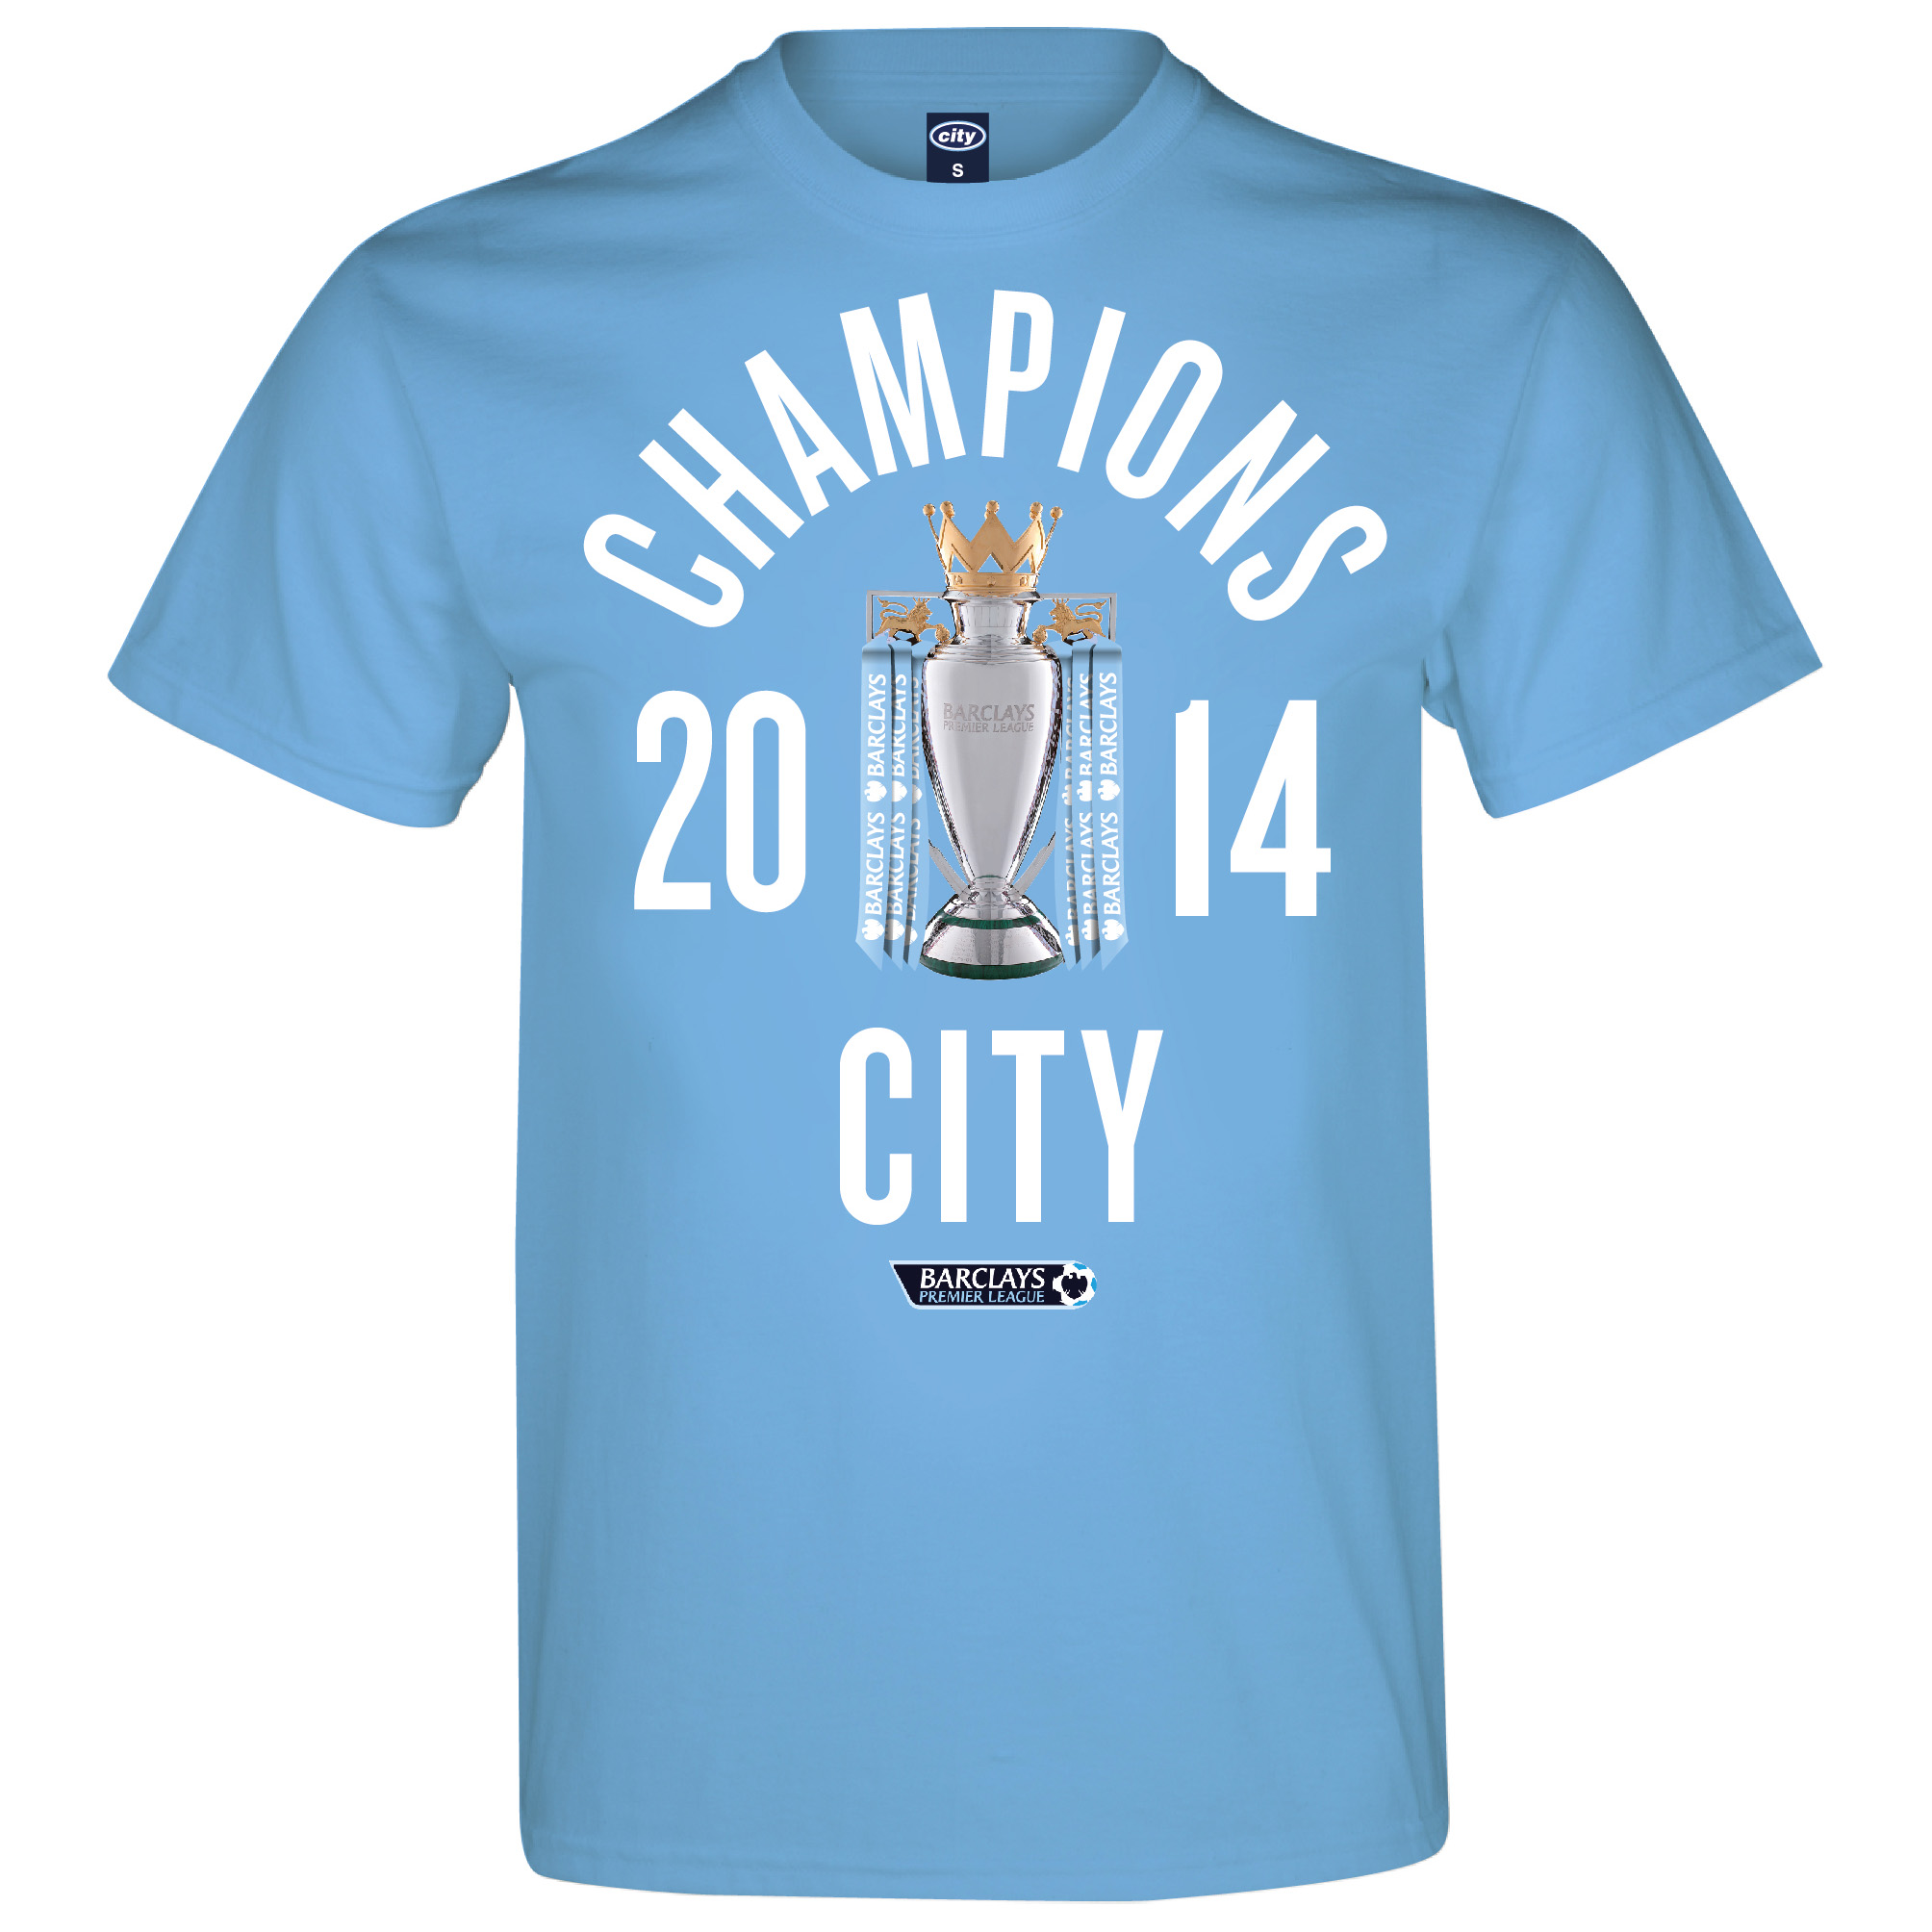 Manchester City 2013/14 Premier league Winners T-Shirt - Sky - Mens